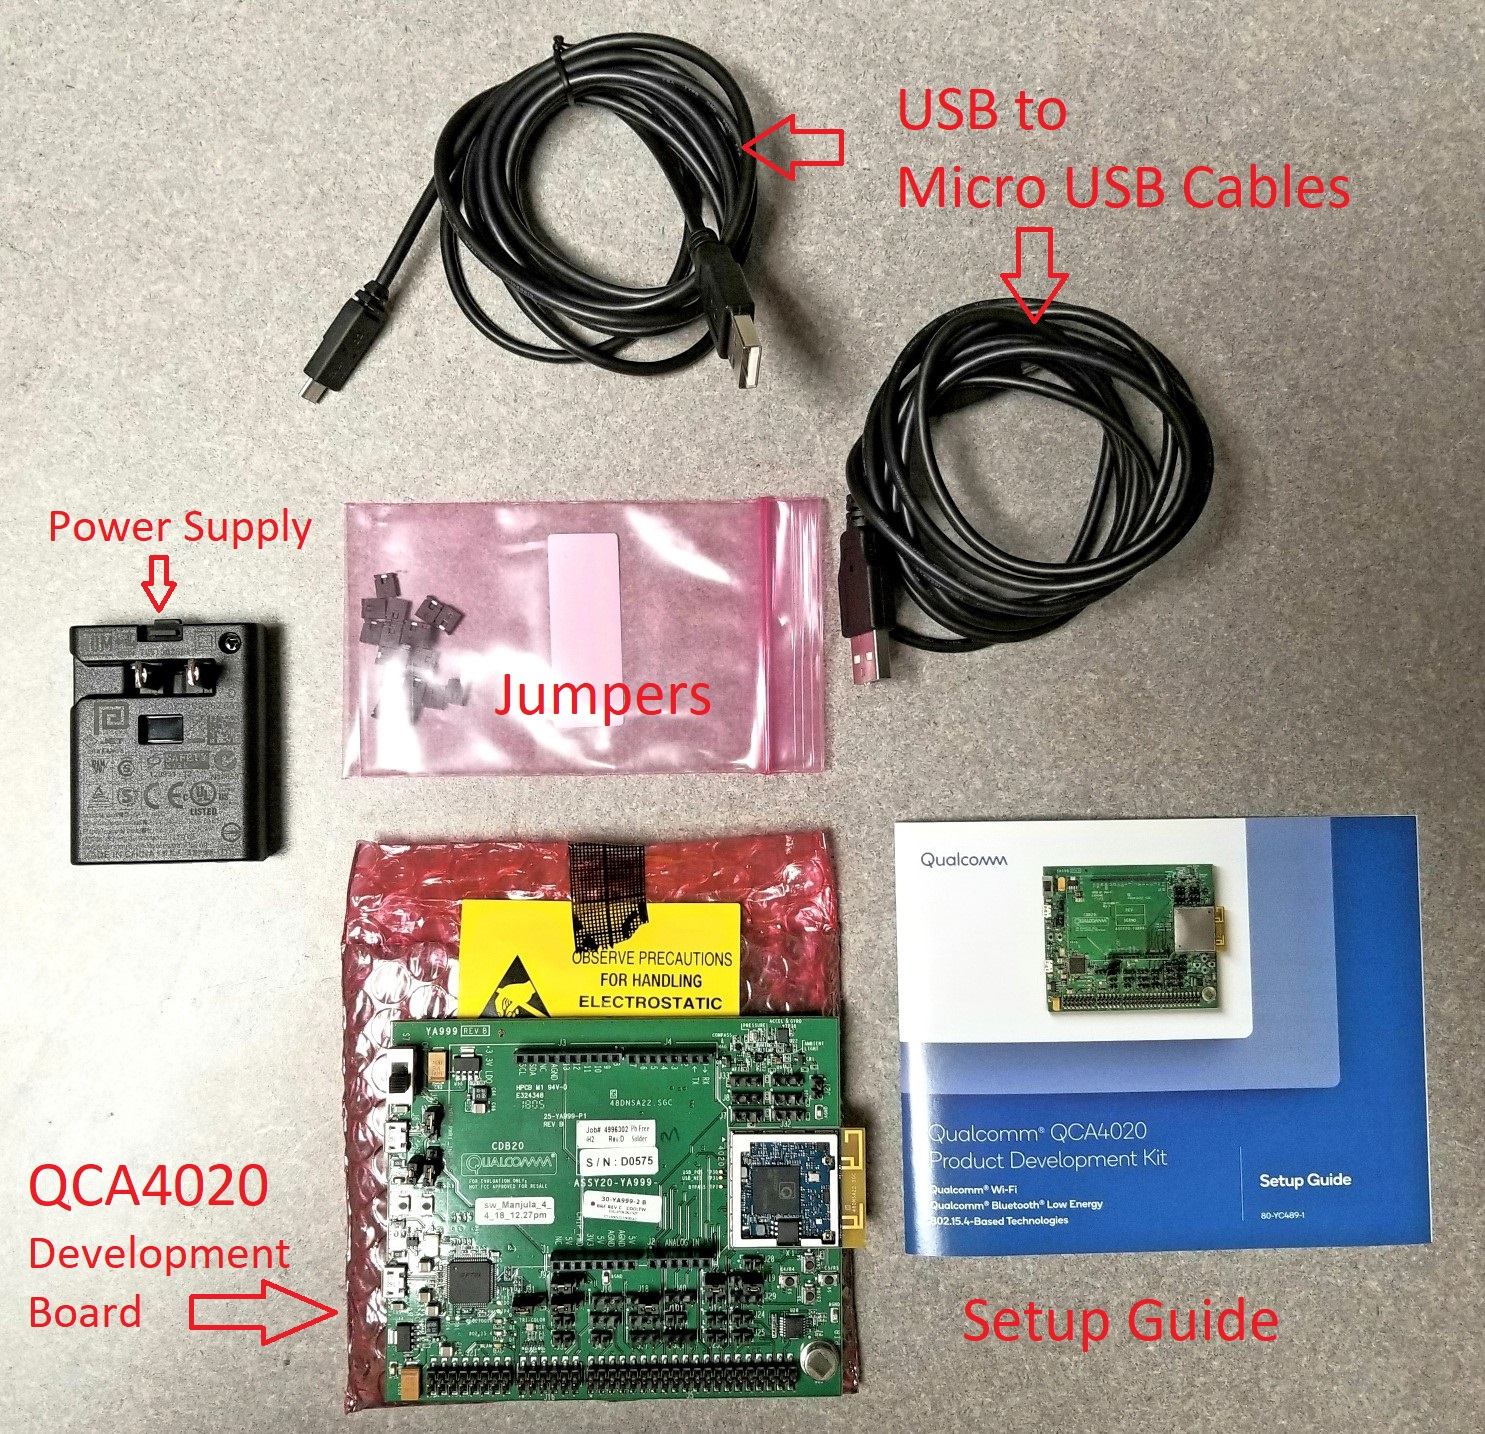 Contents of the QCA4020 Development Kit